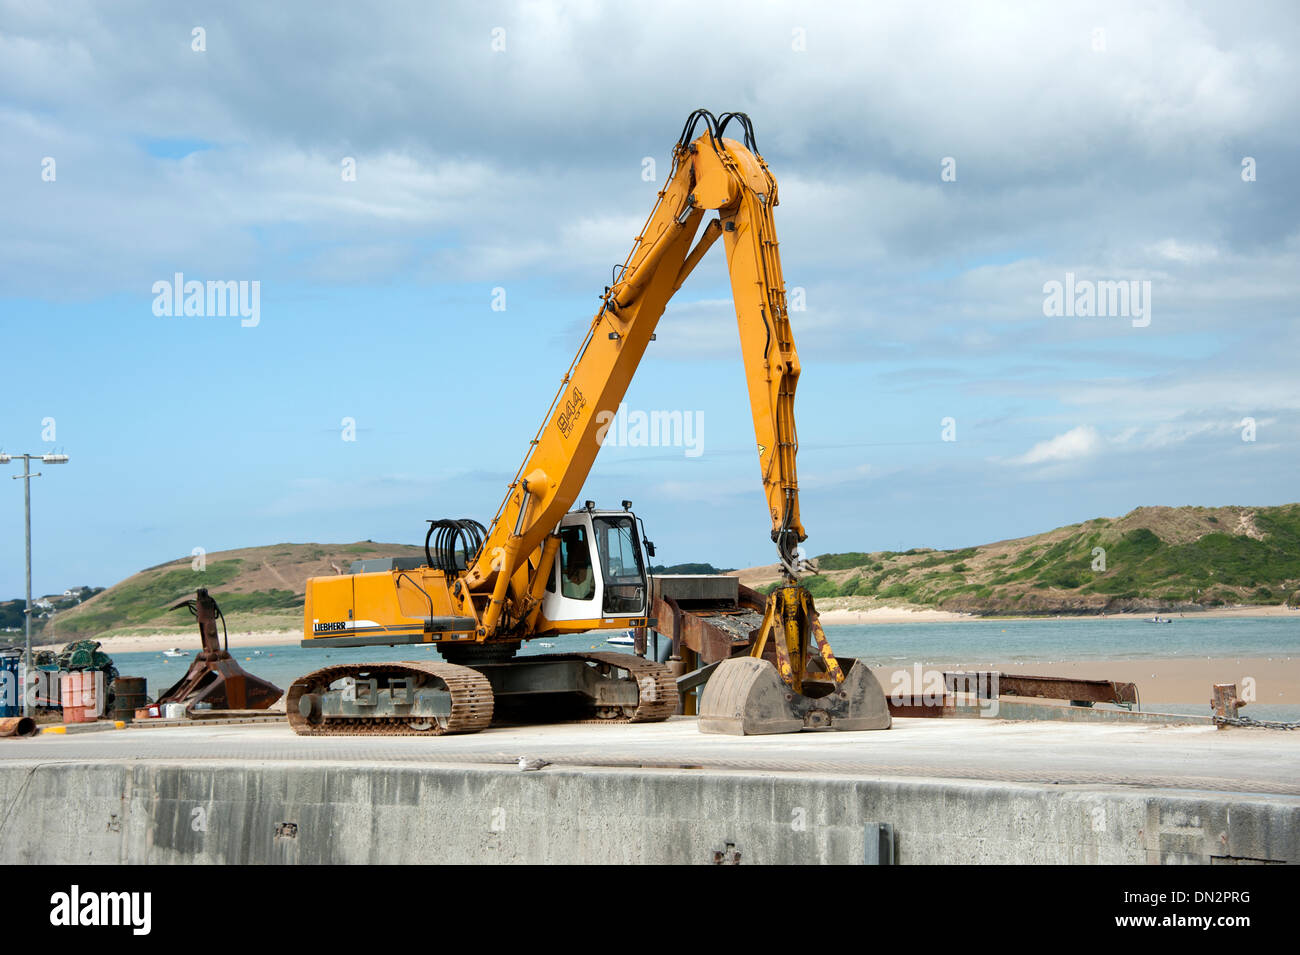 JCB Digger on Dockside Padstow Cornwall - Stock Image